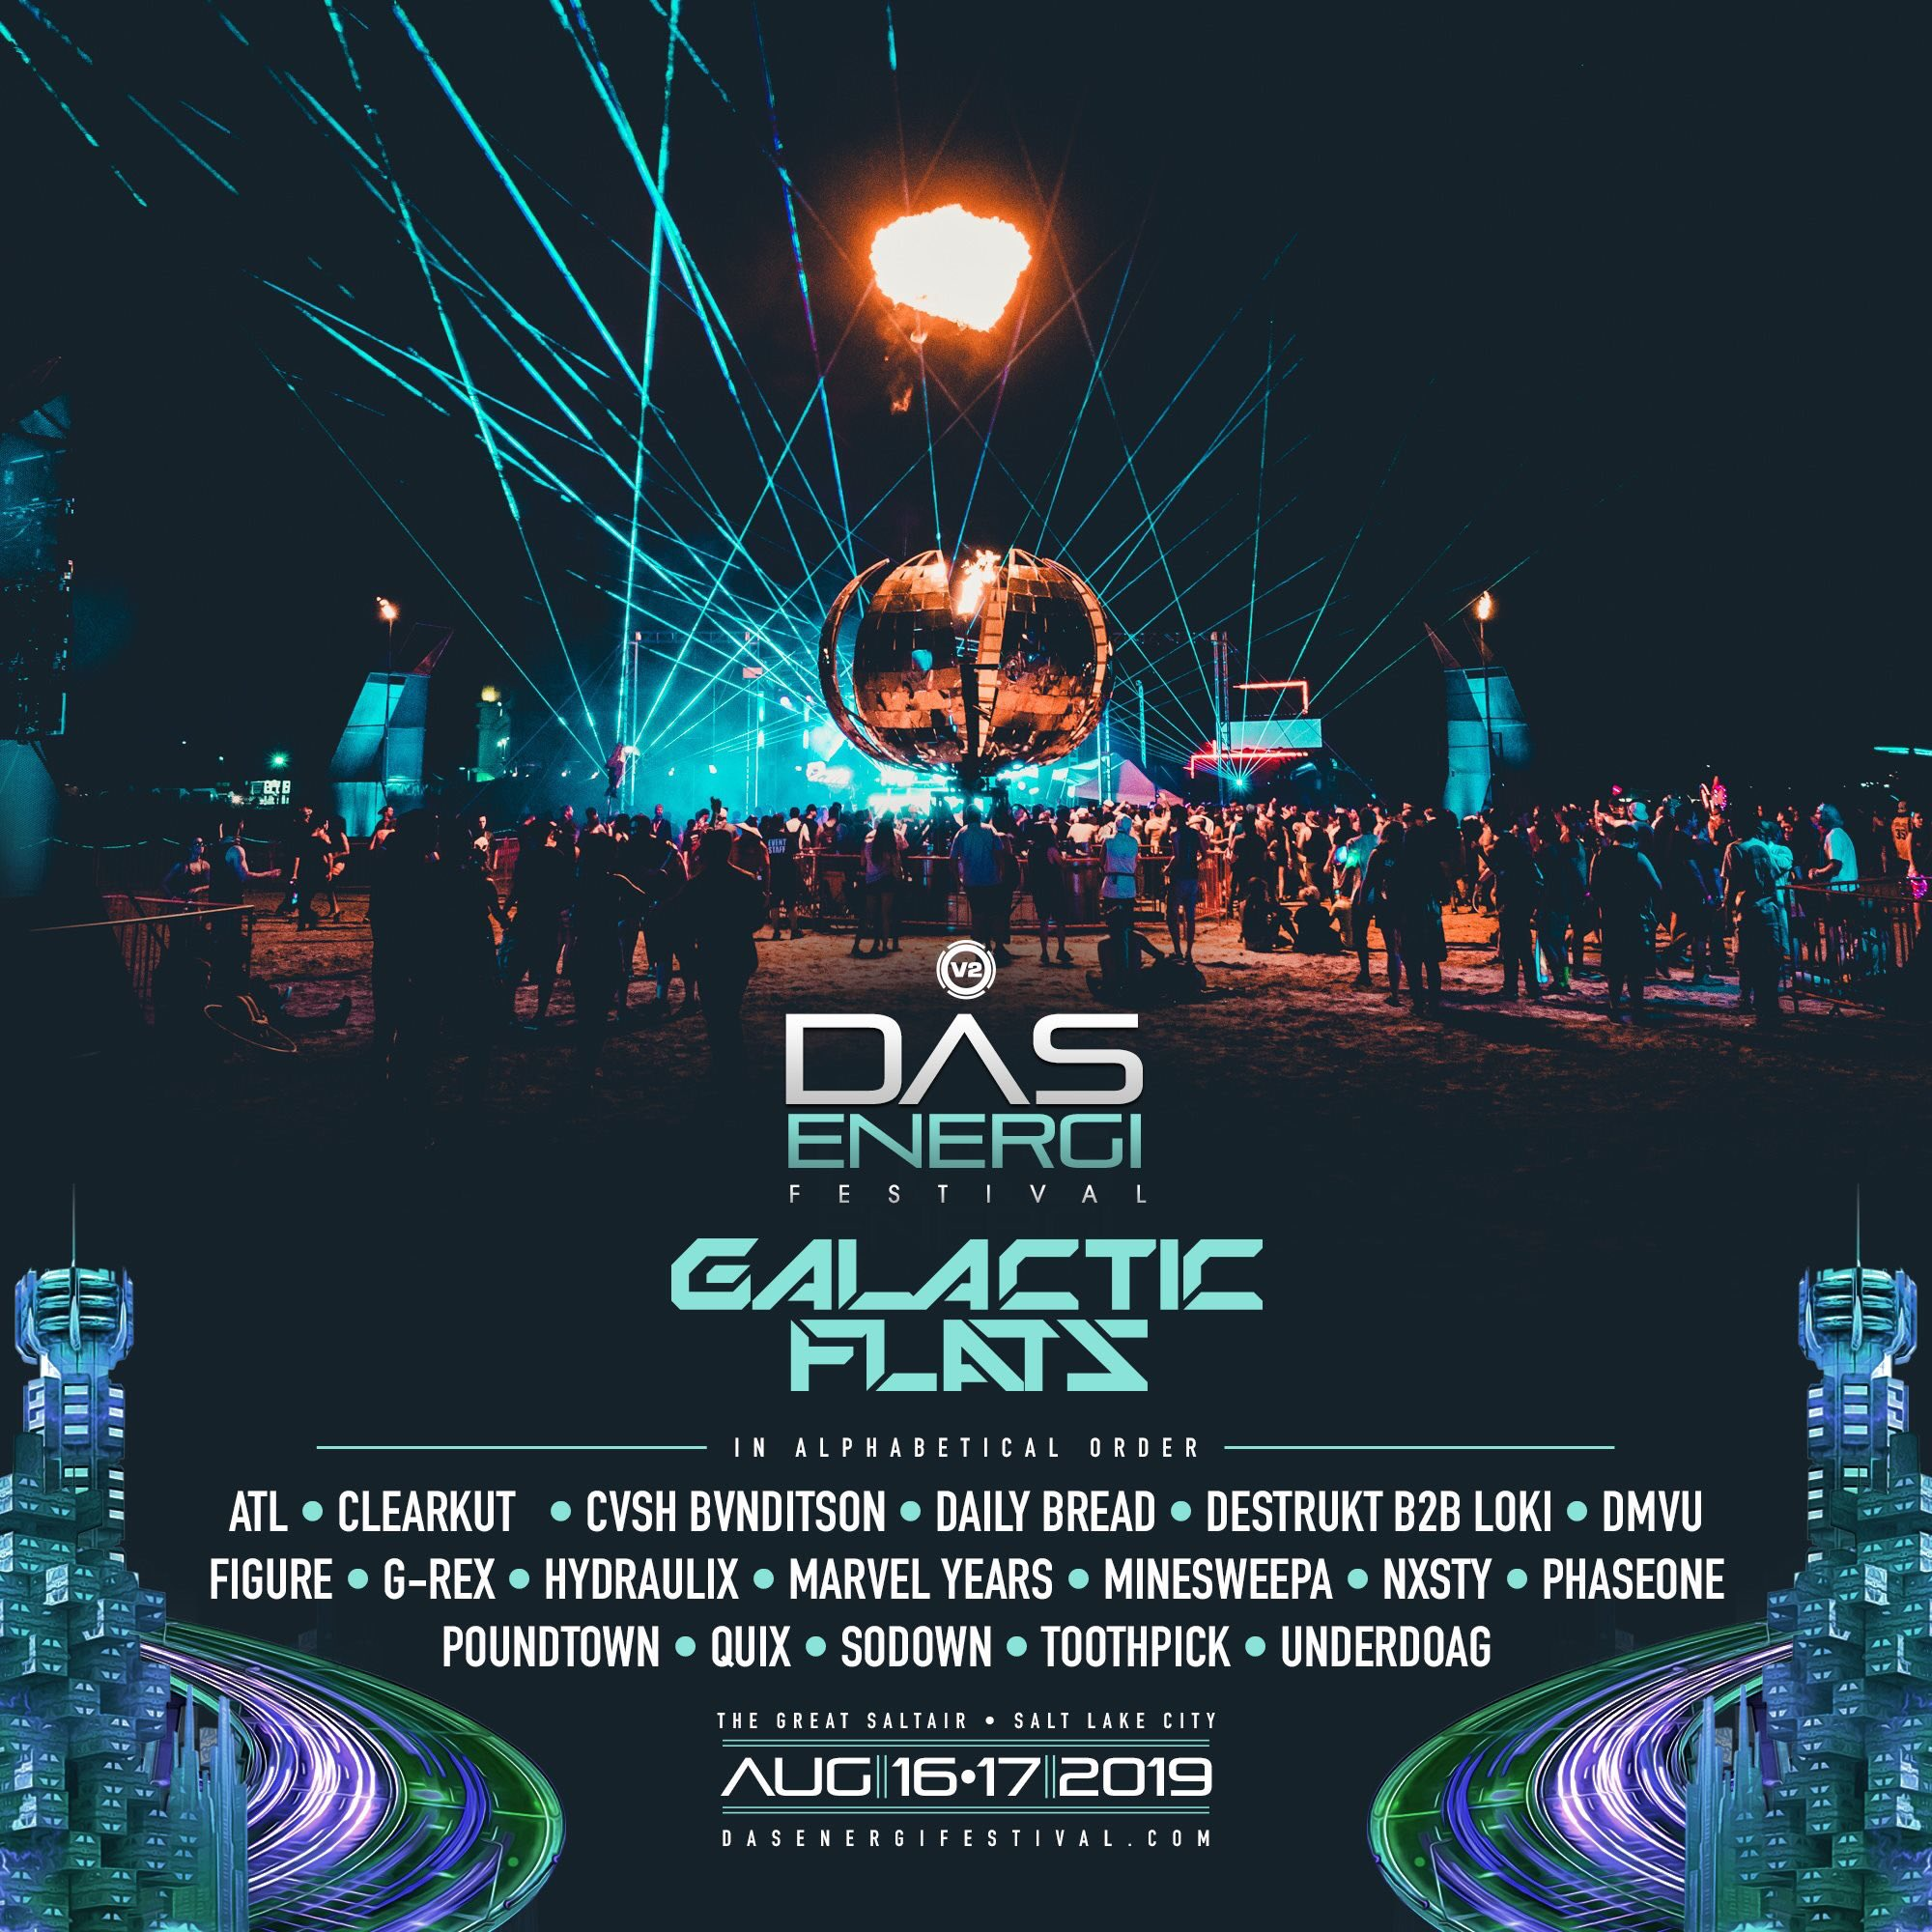 2019 Das Energi Festival lineup for Galactic Flats